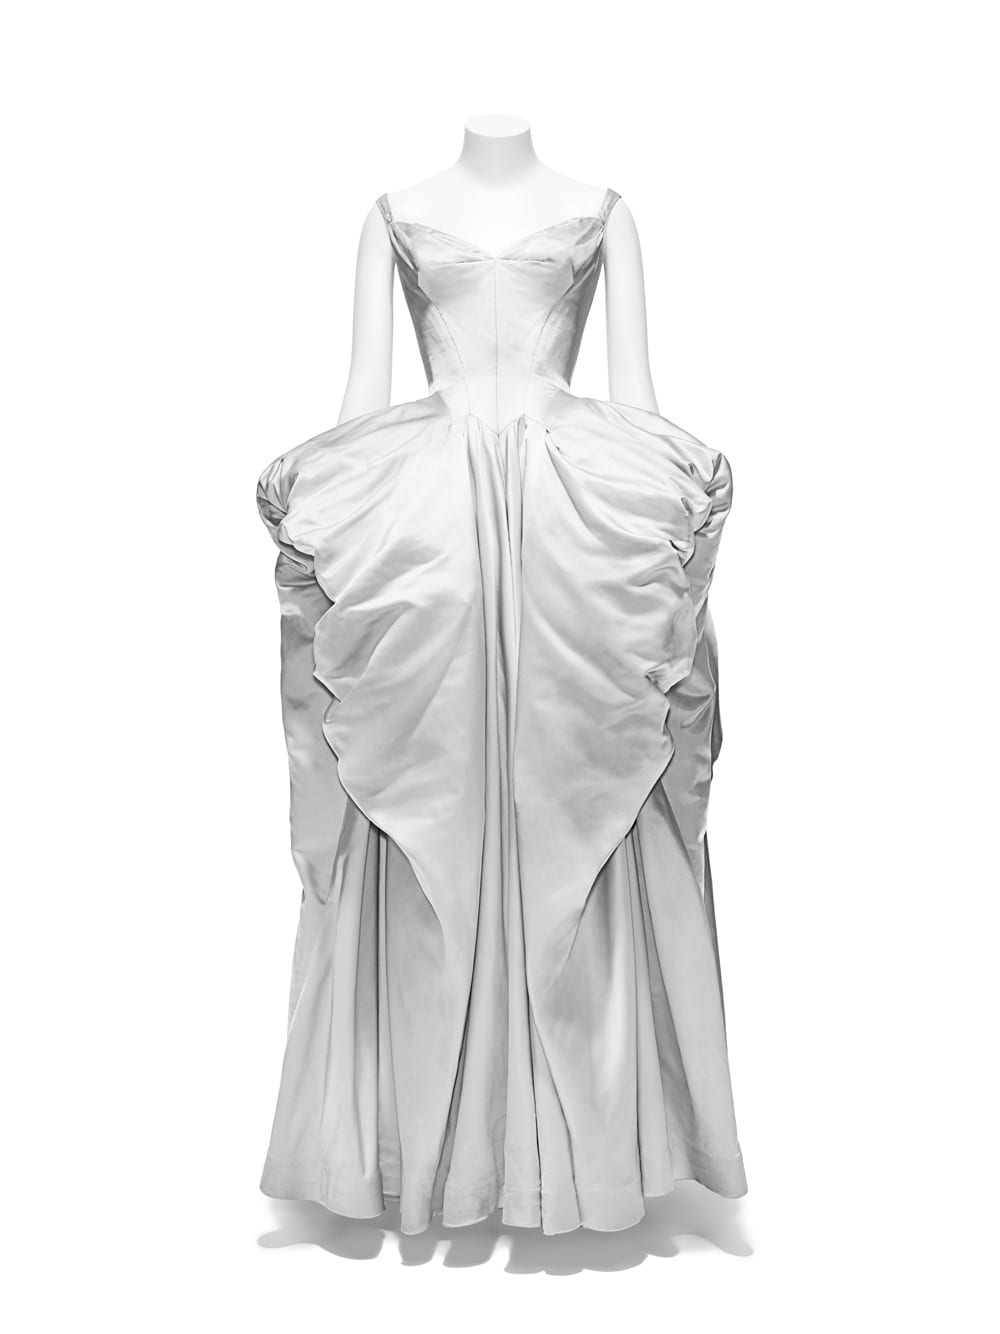 Interruption Ball Gown, Charles James (American, born Great Britain, 1906– 1978), 1951; Brooklyn Museum Costume Collection at The Metropolitan Museum of Art, Gift of the Brooklyn Museum, 2009; Gift of Mr. and Mrs. Robert Coulson, 1964 (2009.300.1311). Image courtesy of The Metropolitan Museum of Art, Photo © Nicholas Alan Cope